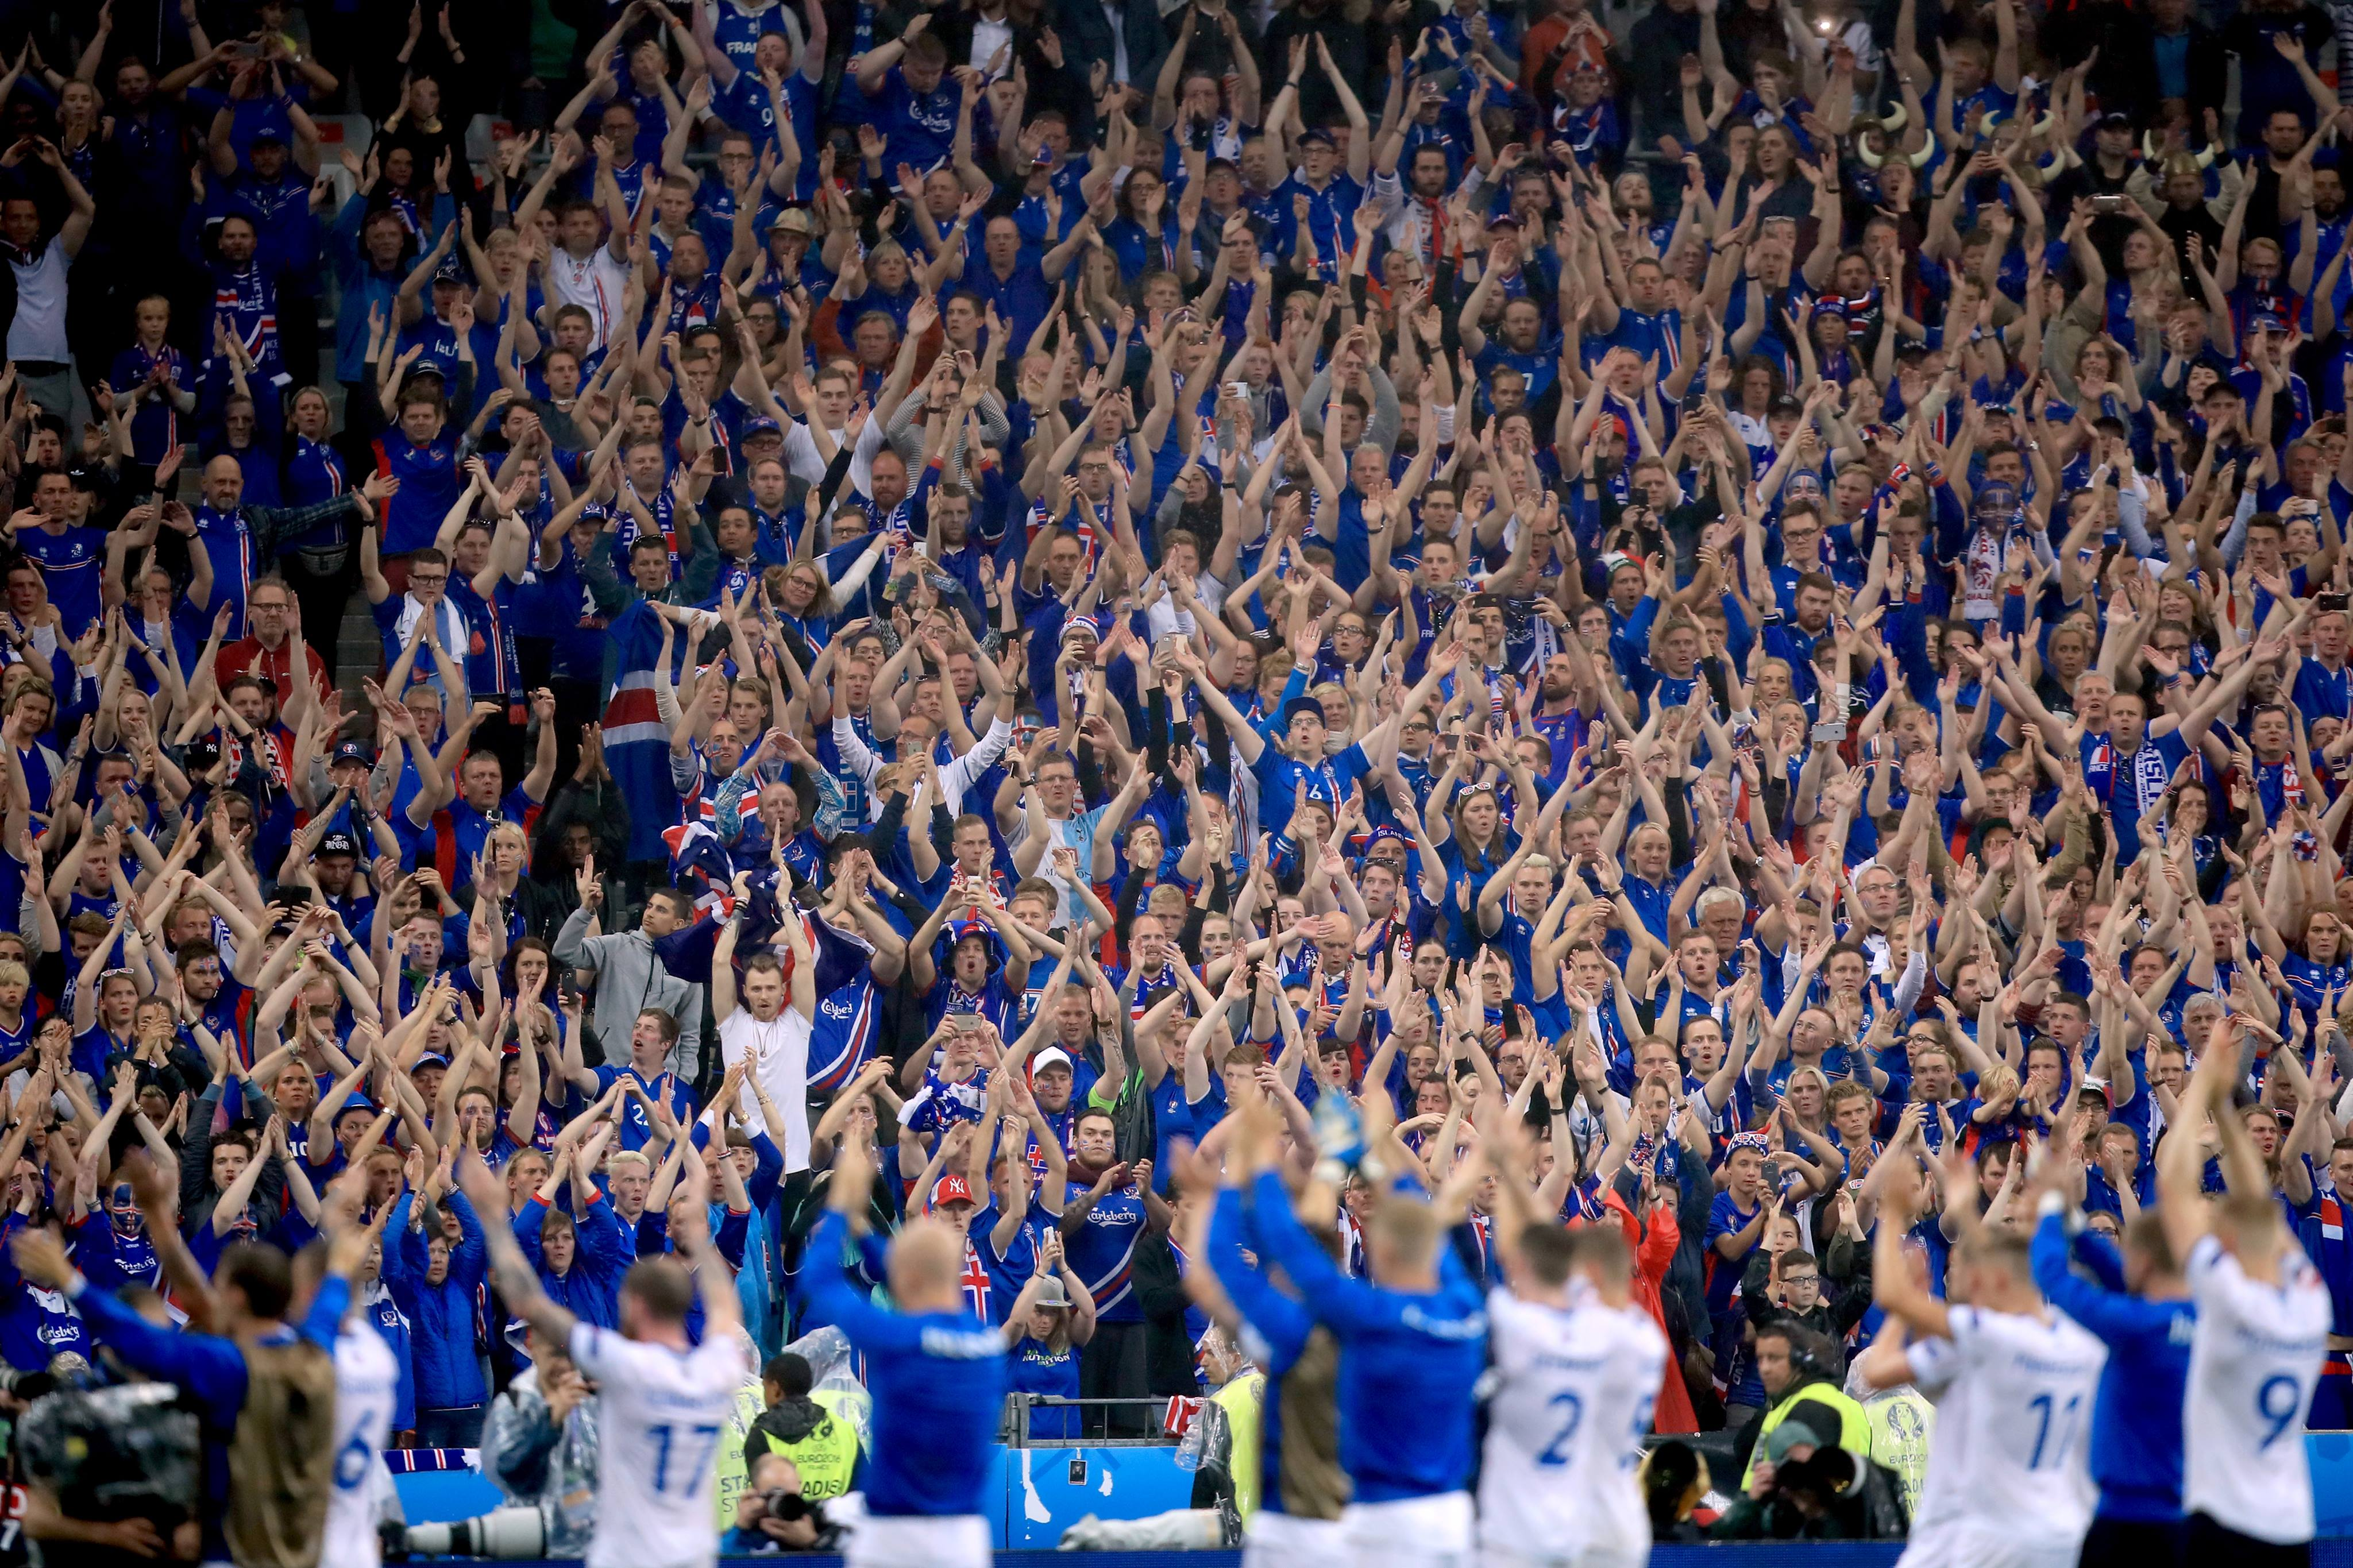 66,000 Iceland Fans Request Tickets For The World Cup In Russia